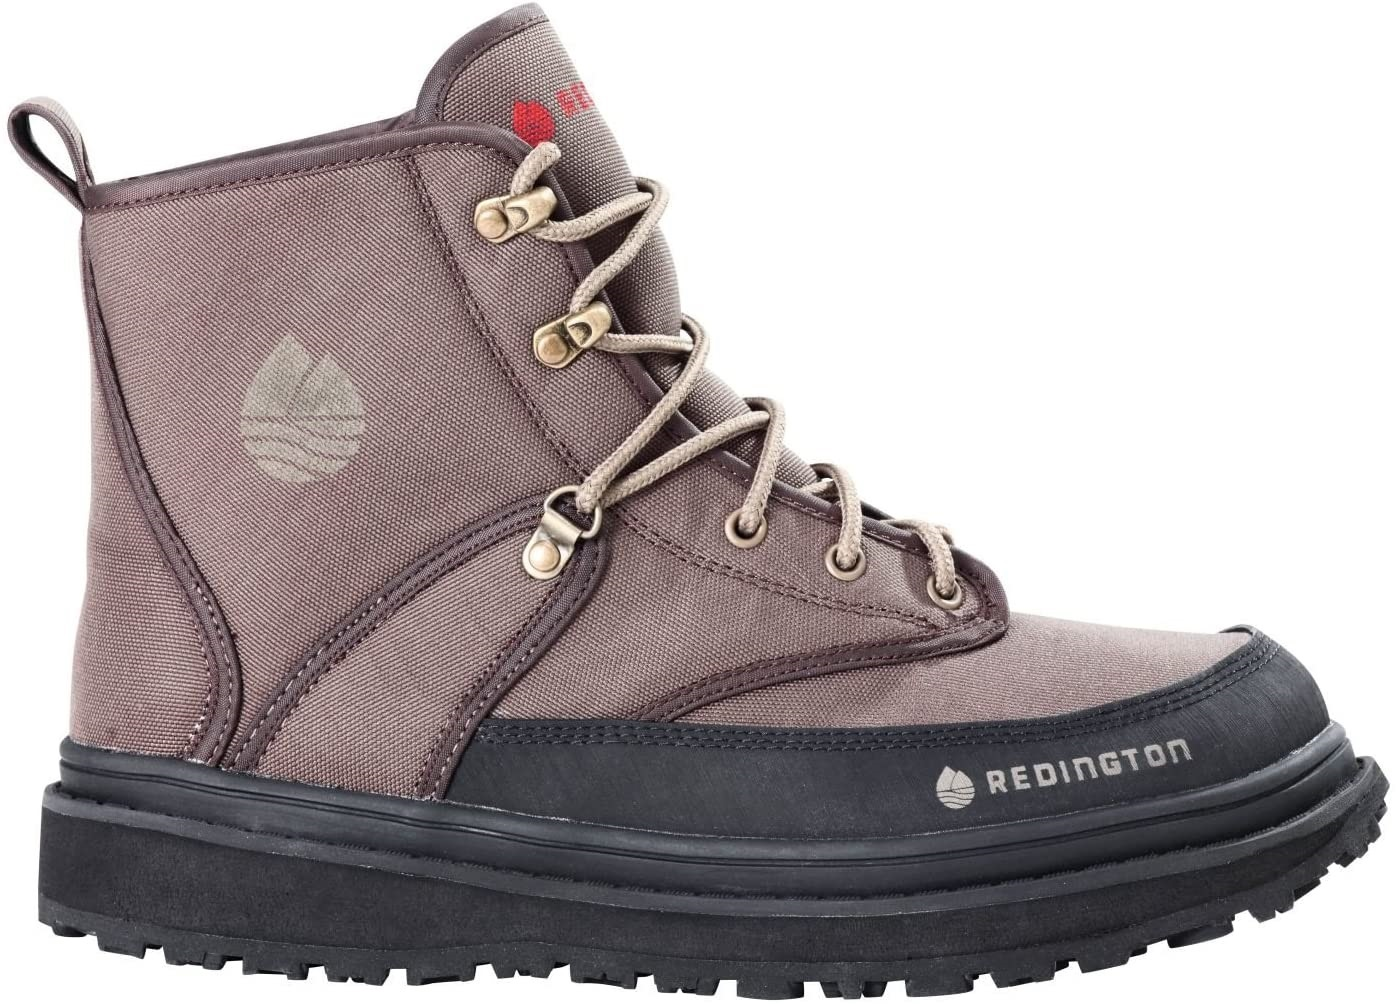 Redington Redington Palix River Boot- Sticky Rubber Bark